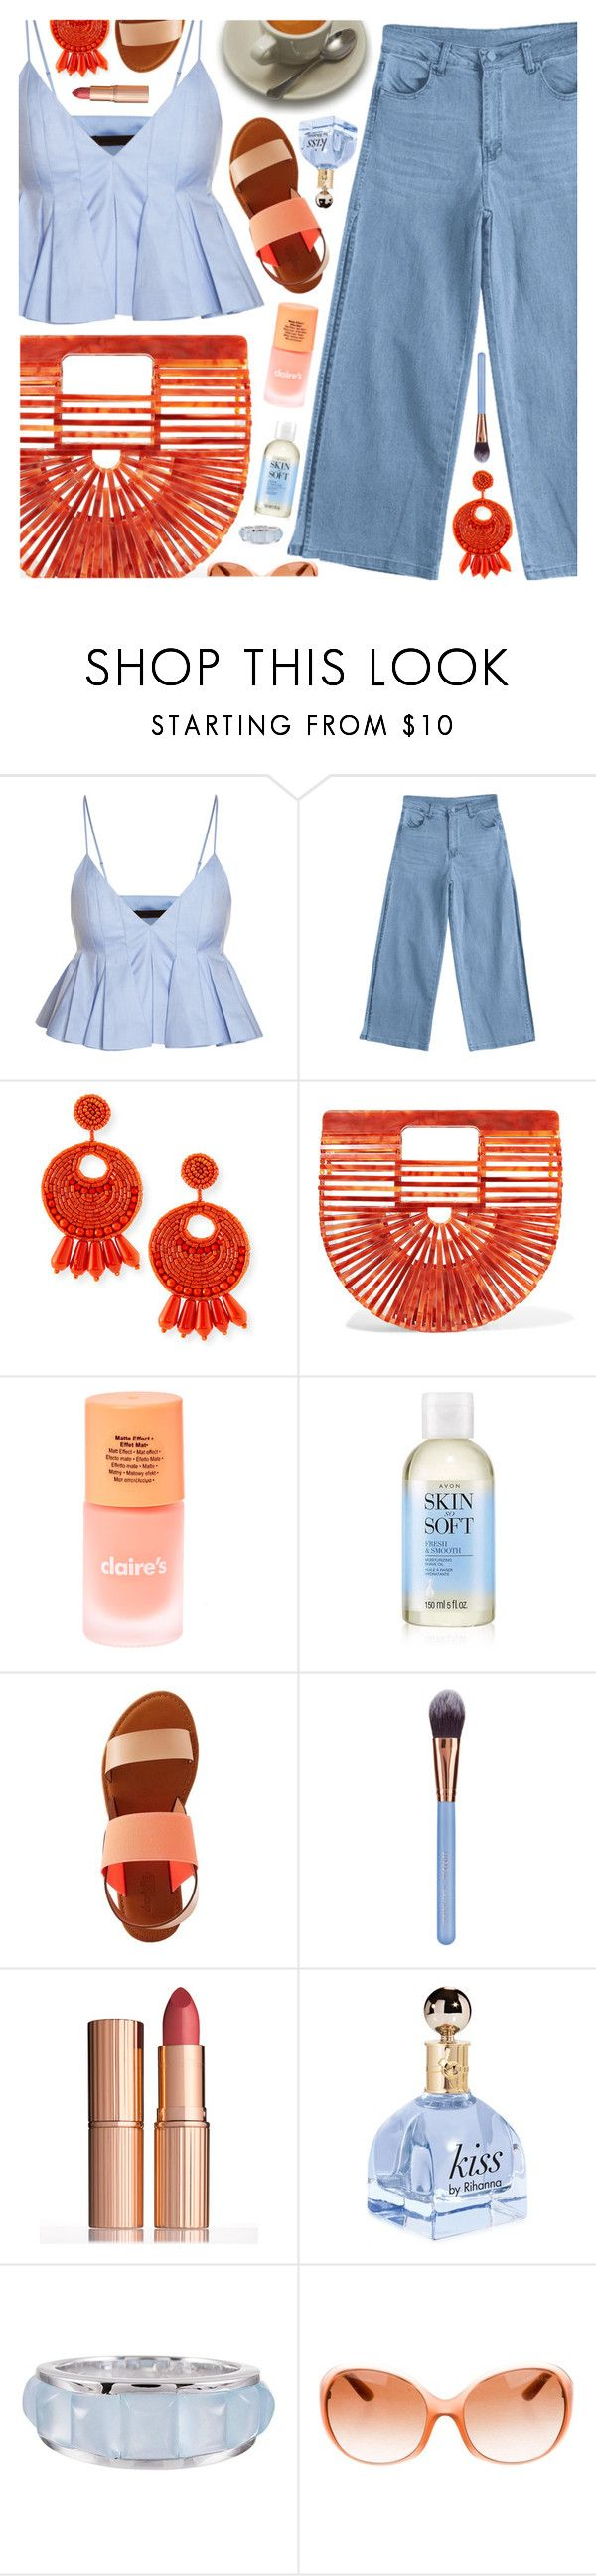 """(feat. Gucci Mane), Selena Gomez"" by blendasantos ❤ liked on Polyvore featuring Kenneth Jay Lane, Cult Gaia, claire's, Avon, Charlotte Russe, Luxie, Charlotte Tilbury, Seaman Schepps, Prada and pleats"